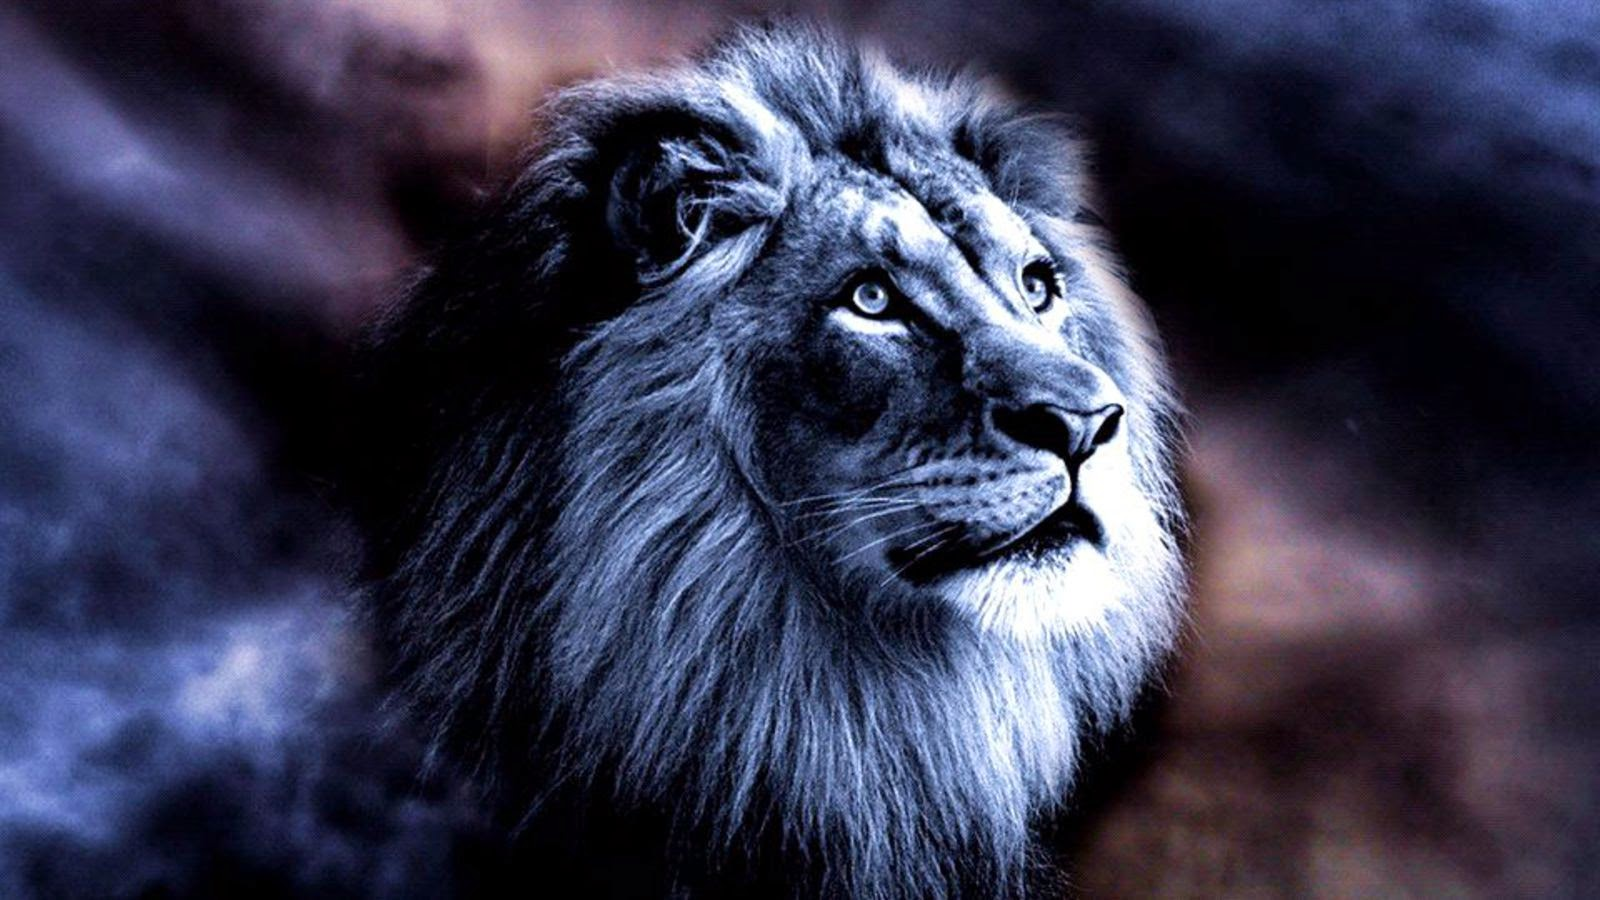 Blue lion wallpaper hd - photo#9